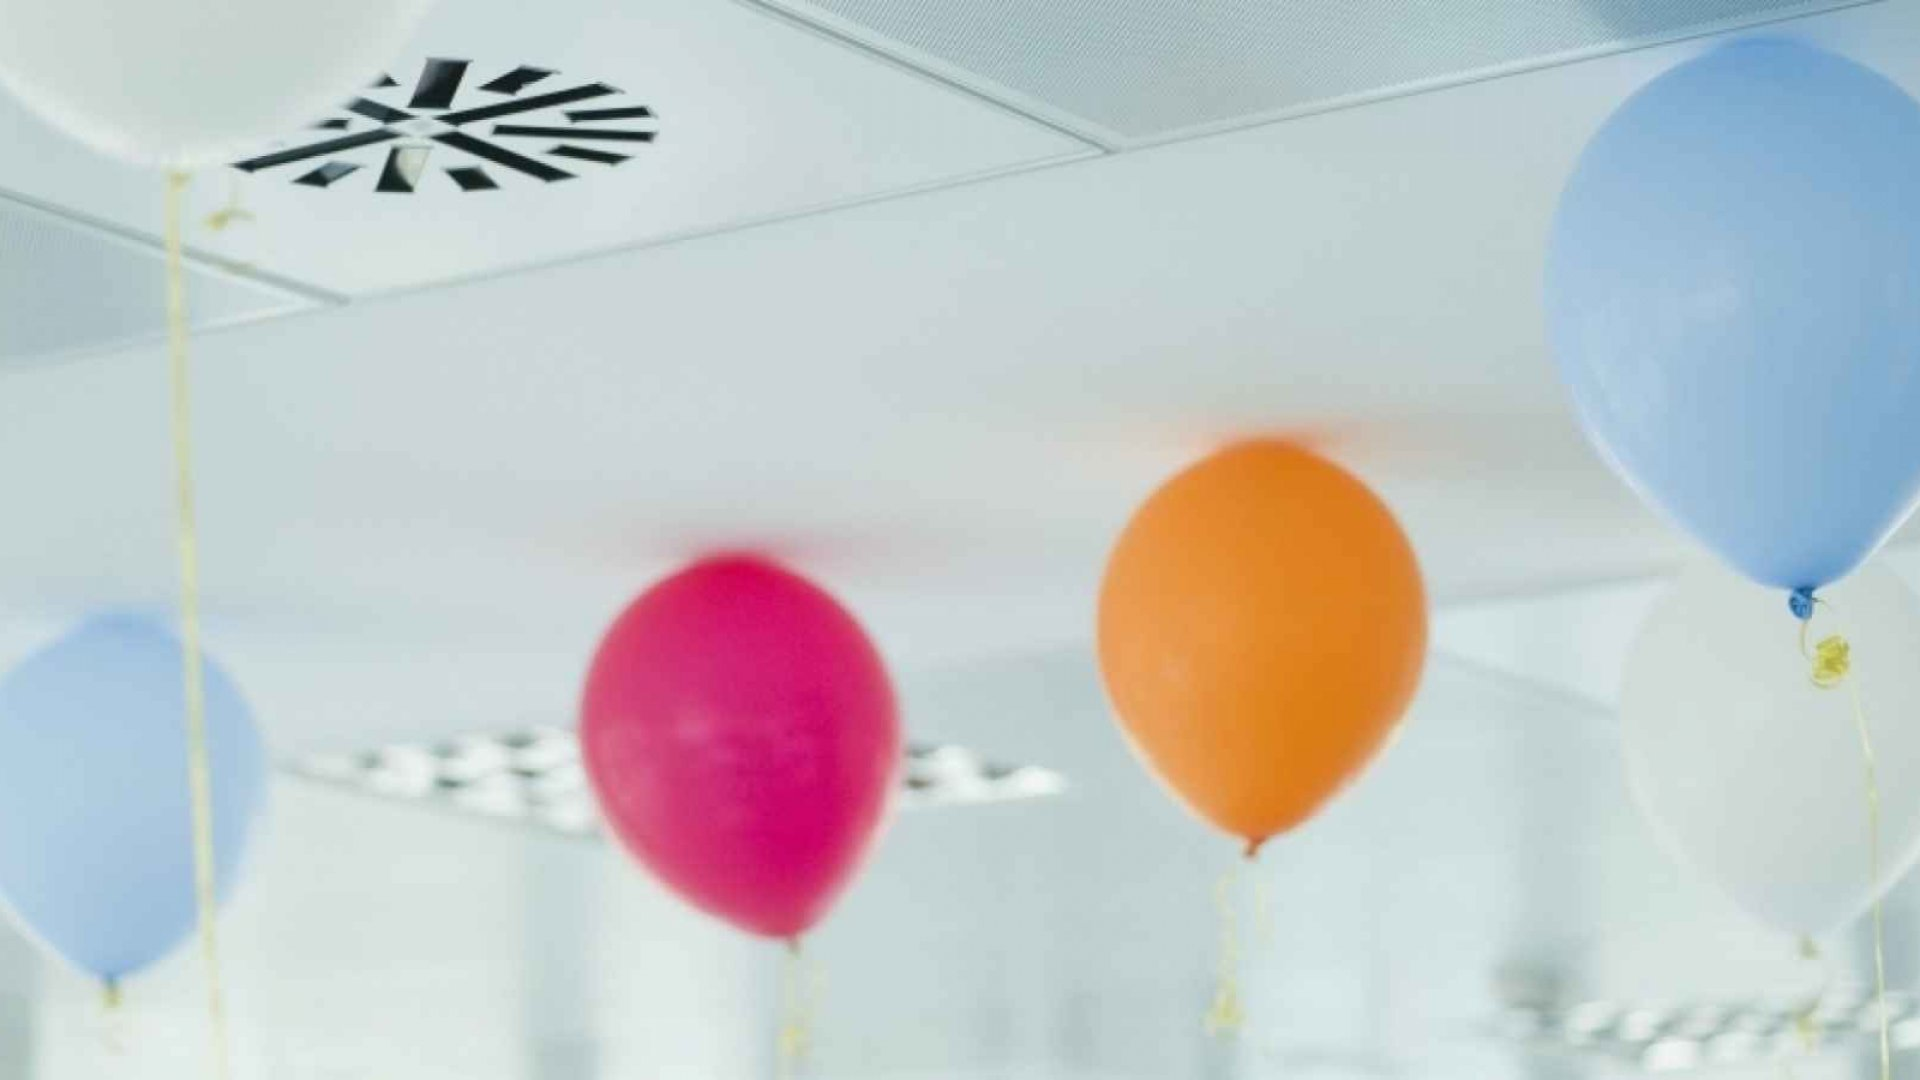 10 Ideas for Celebrating Your Employees' Personal Milestones